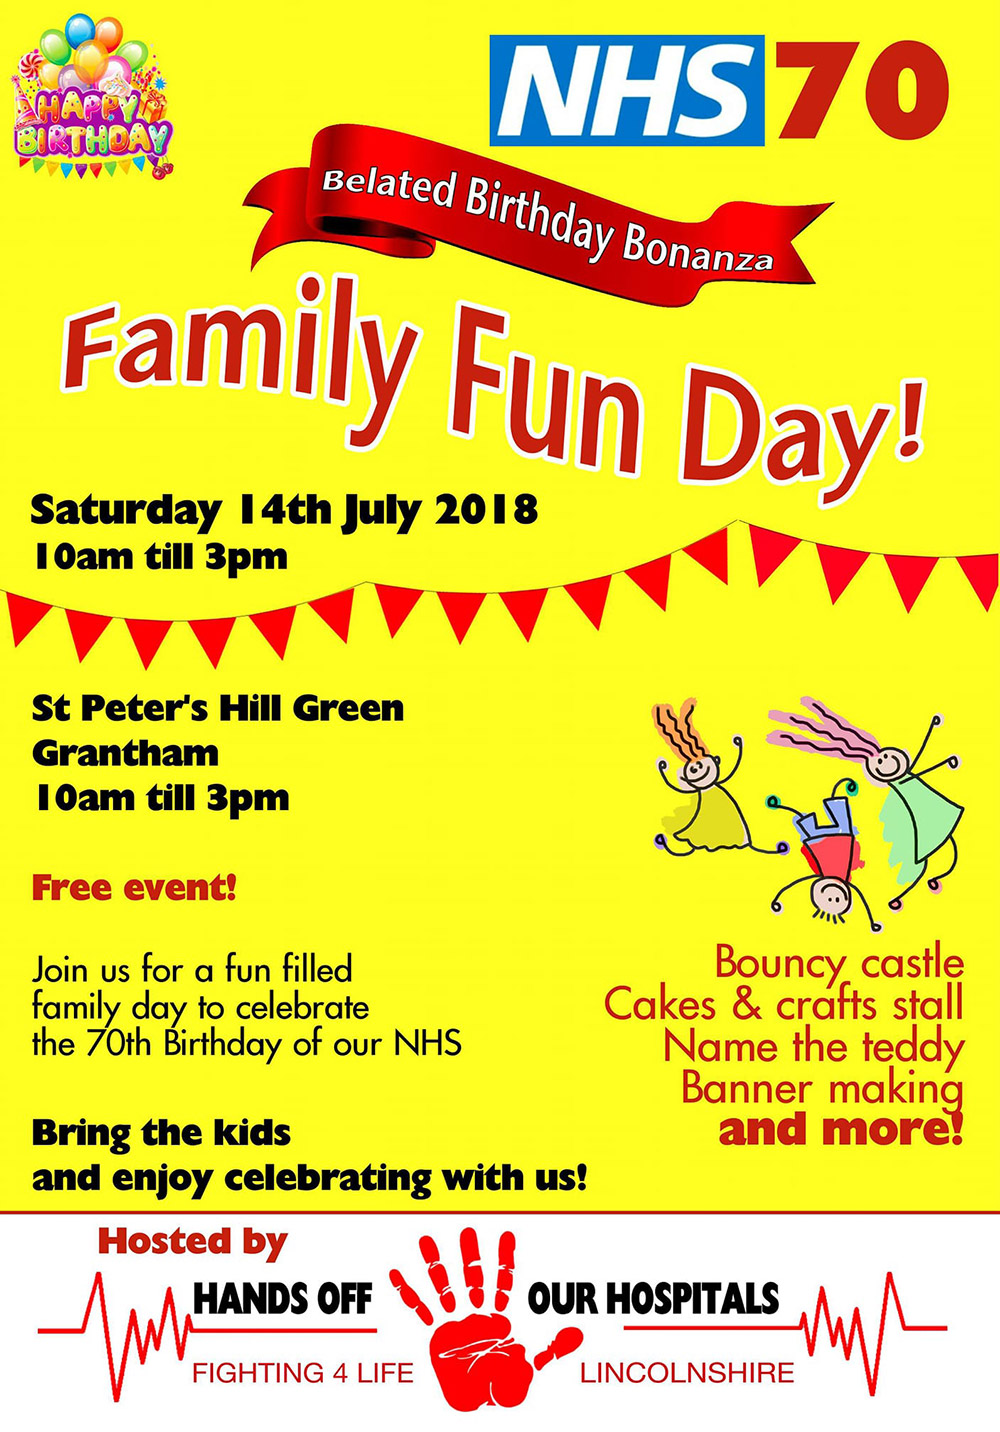 Fighting 4 Life Family Fun Day NHS 70th